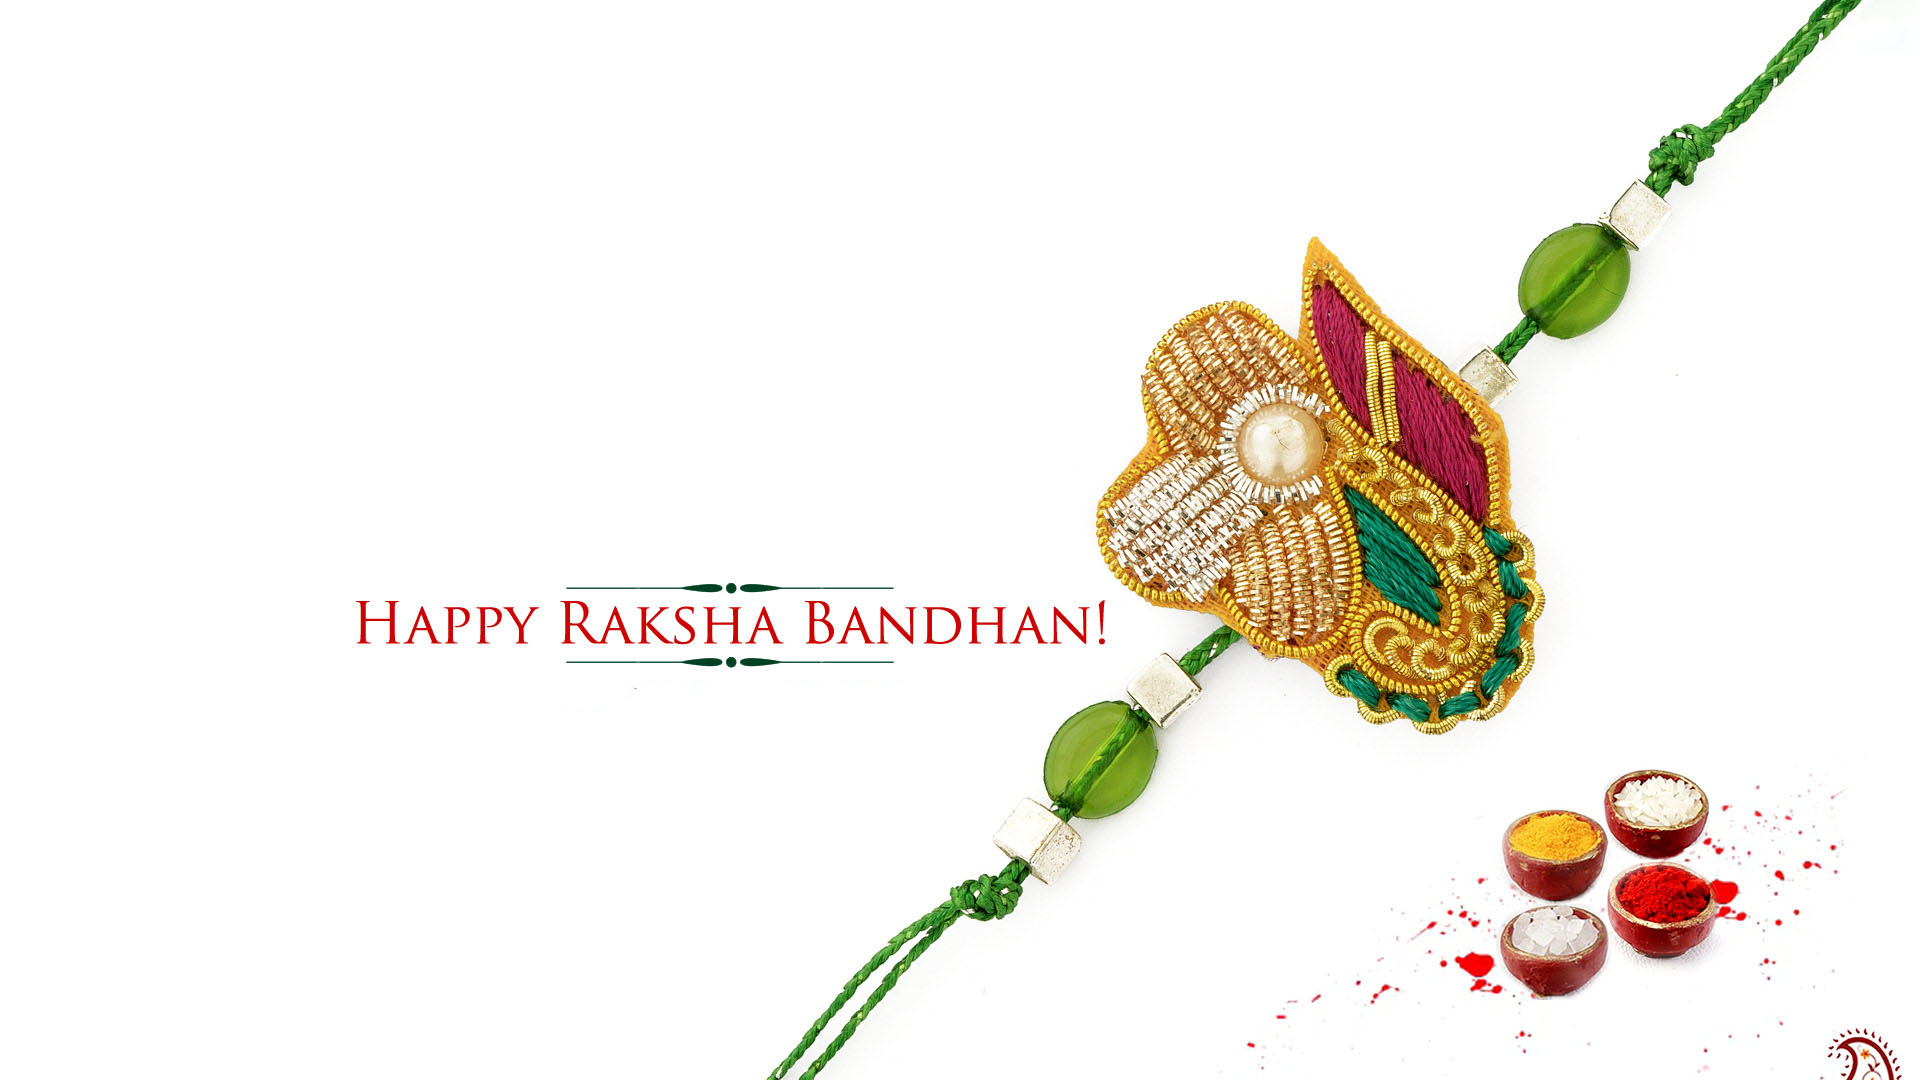 Raksha bandhan 2017 images quotes pictures messages sms and raksha bandhan wishes kristyandbryce Image collections